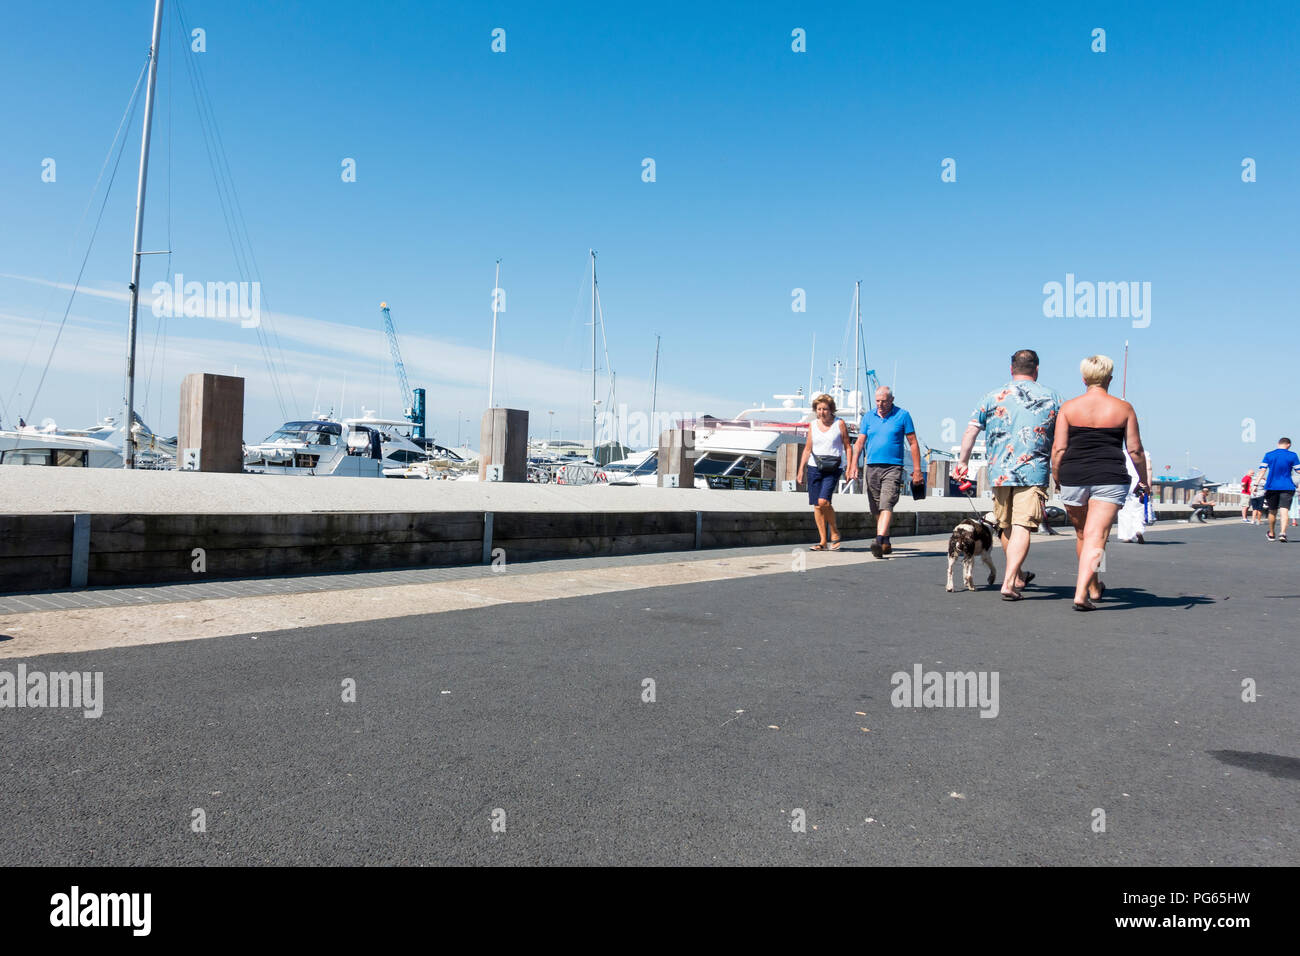 People walking along Poole Quay on a warm sunny day, Poole, Dorset, UK - Stock Image